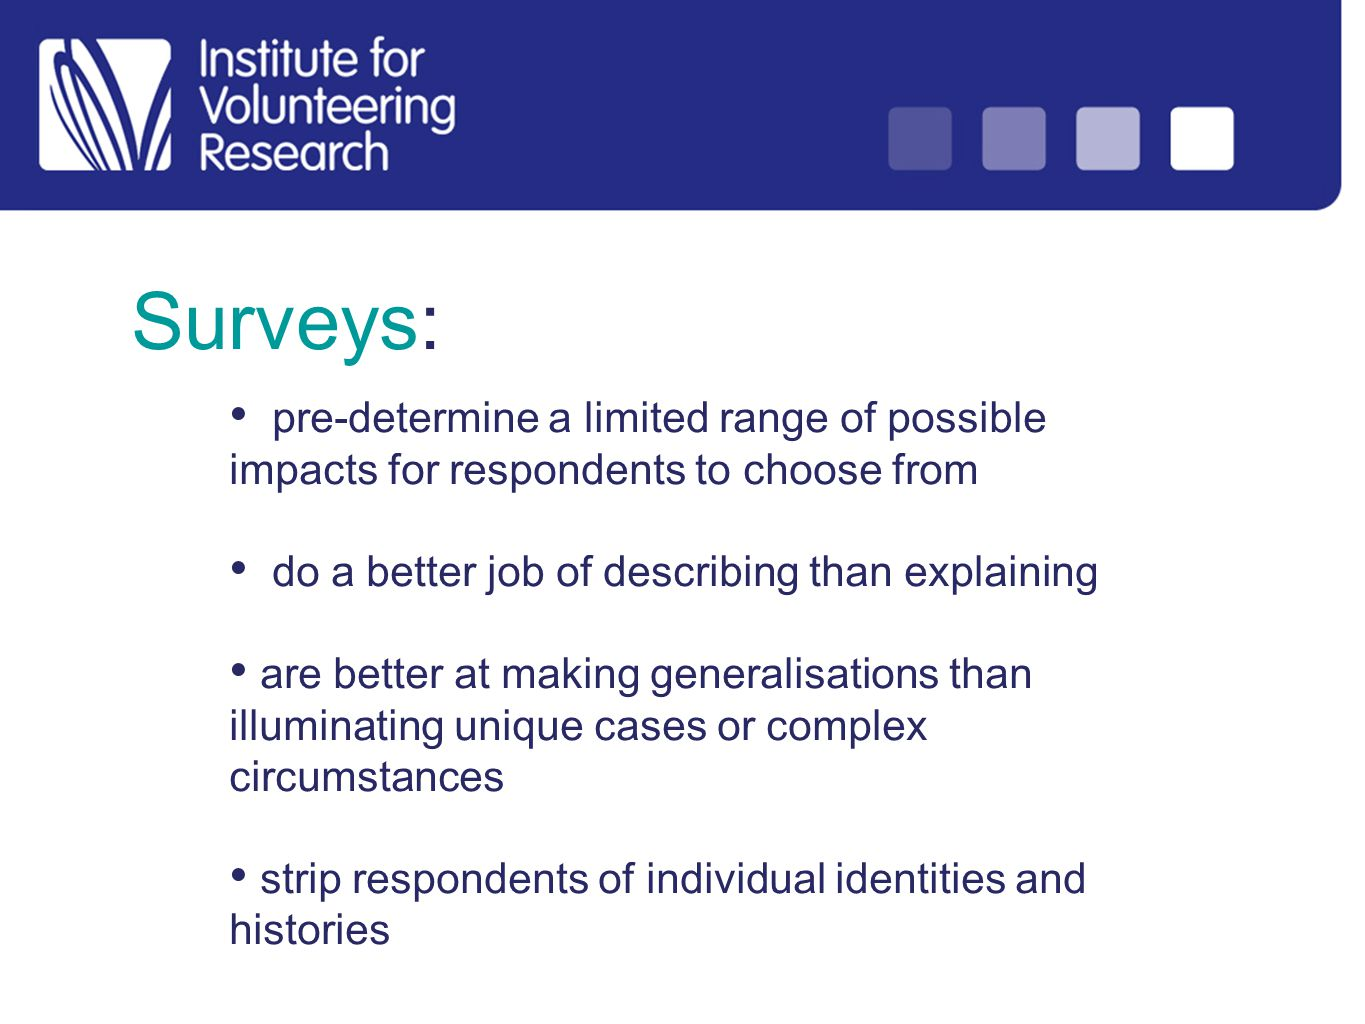 Surveys: pre-determine a limited range of possible impacts for respondents to choose from do a better job of describing than explaining are better at making generalisations than illuminating unique cases or complex circumstances strip respondents of individual identities and histories